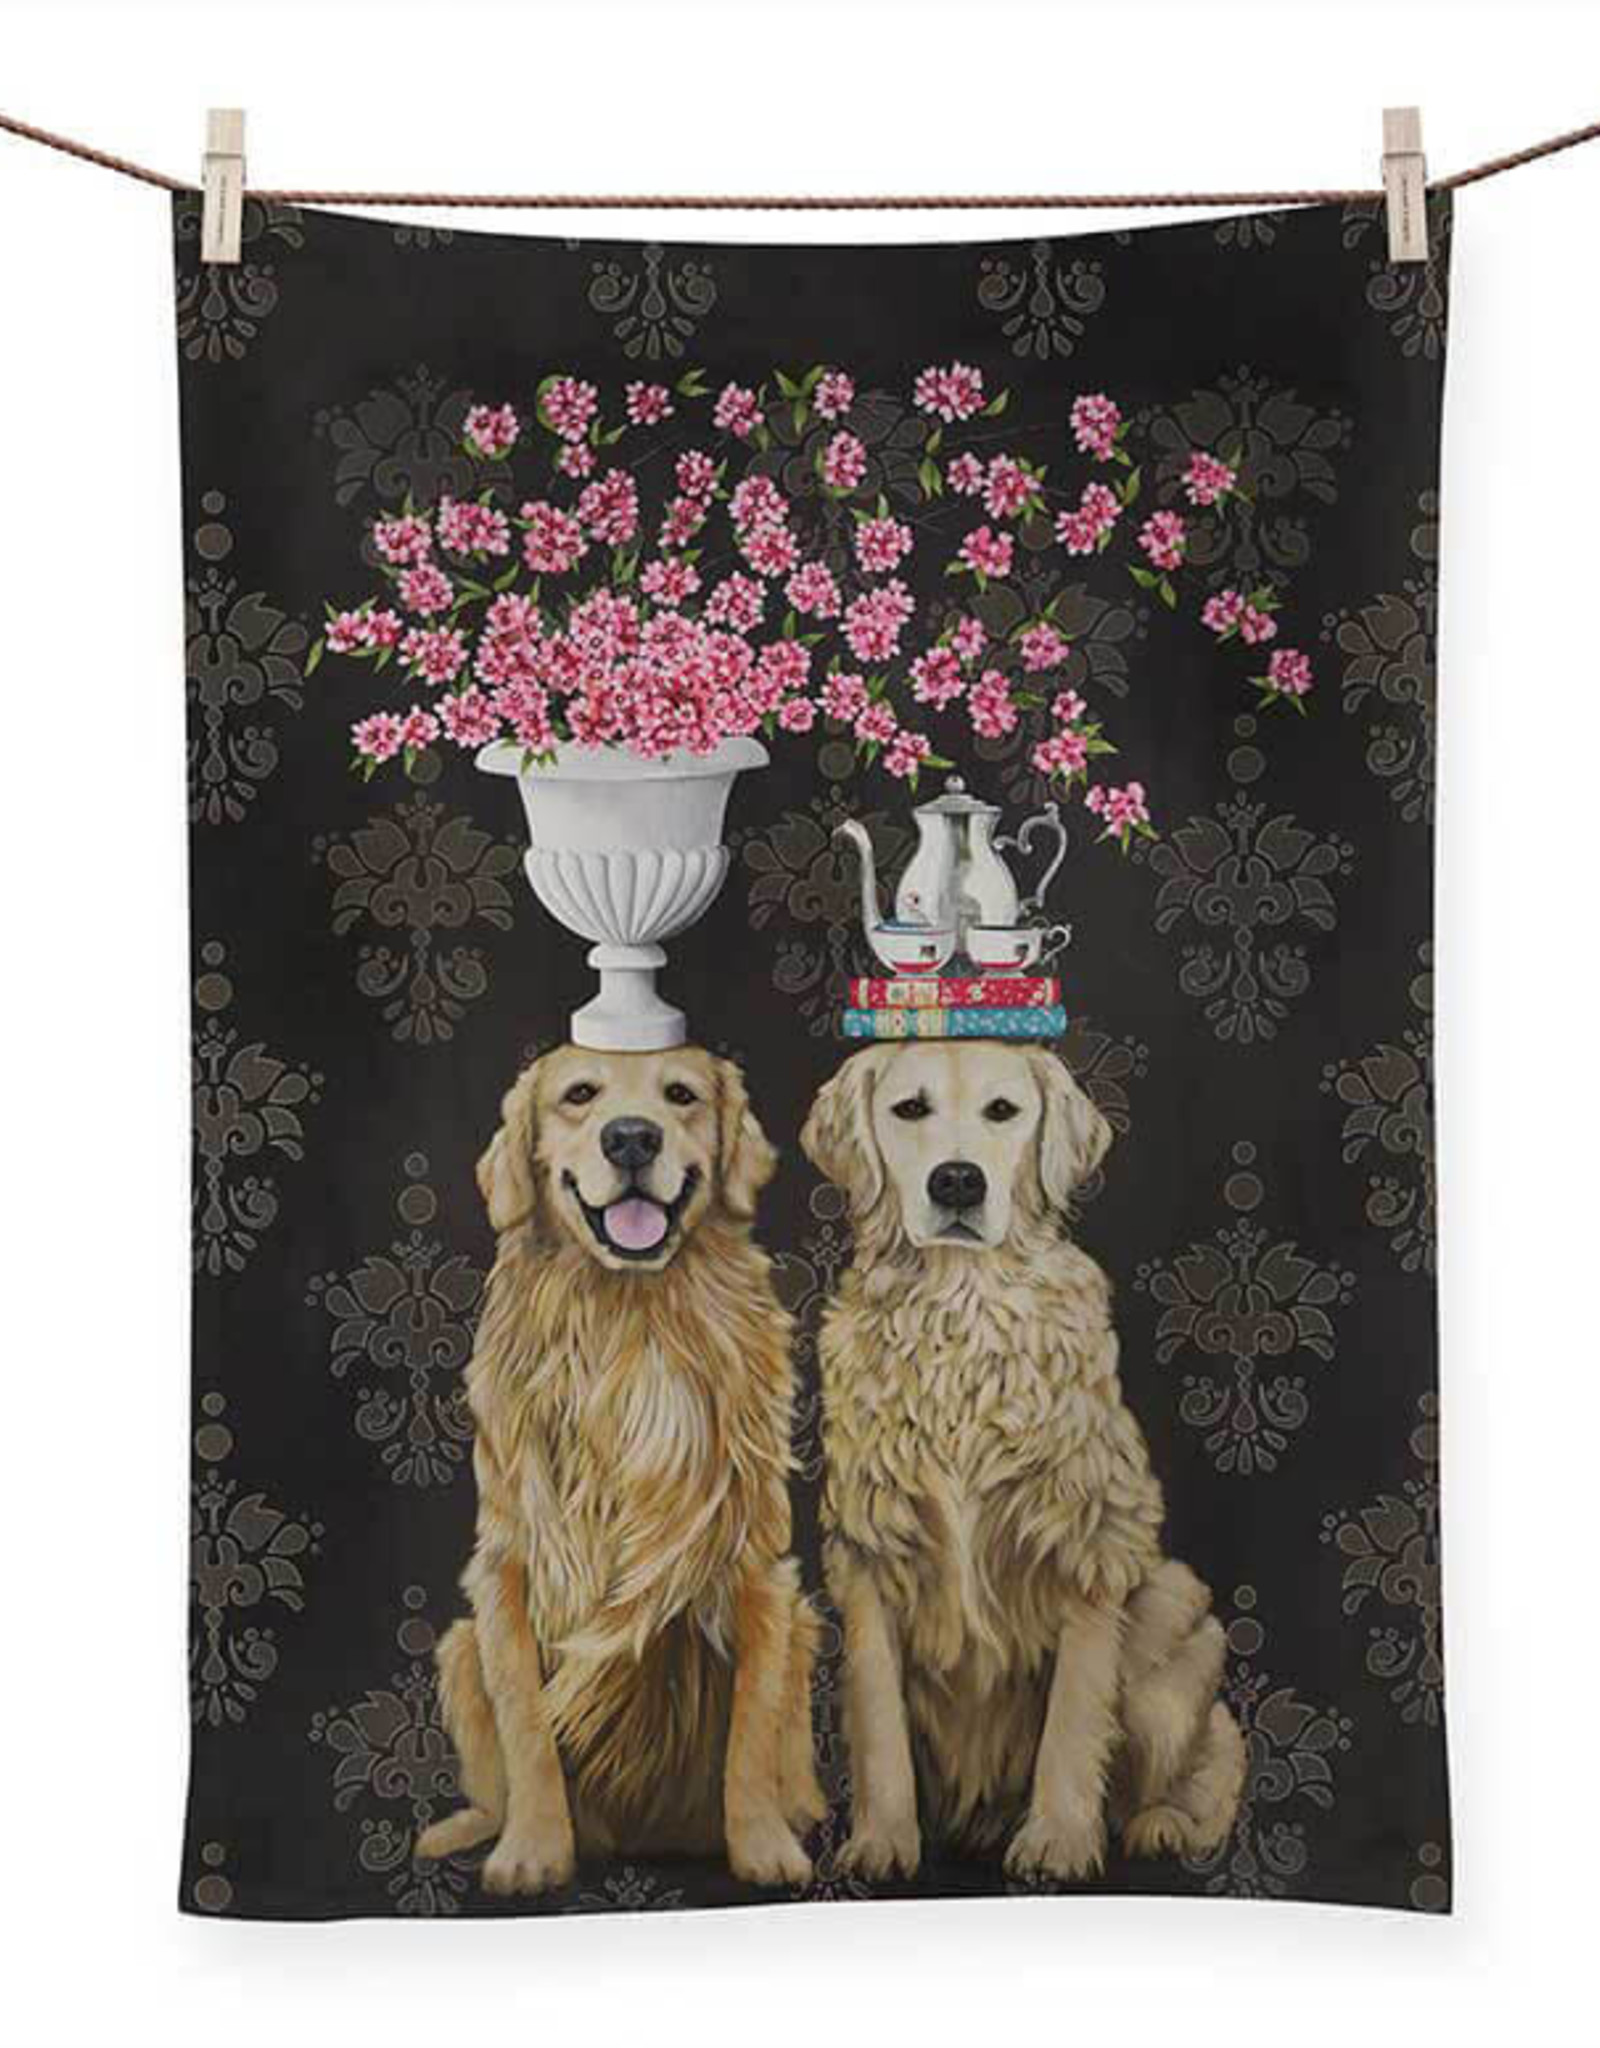 Greenbox Art Greenbox Golden Couple Tea Towel